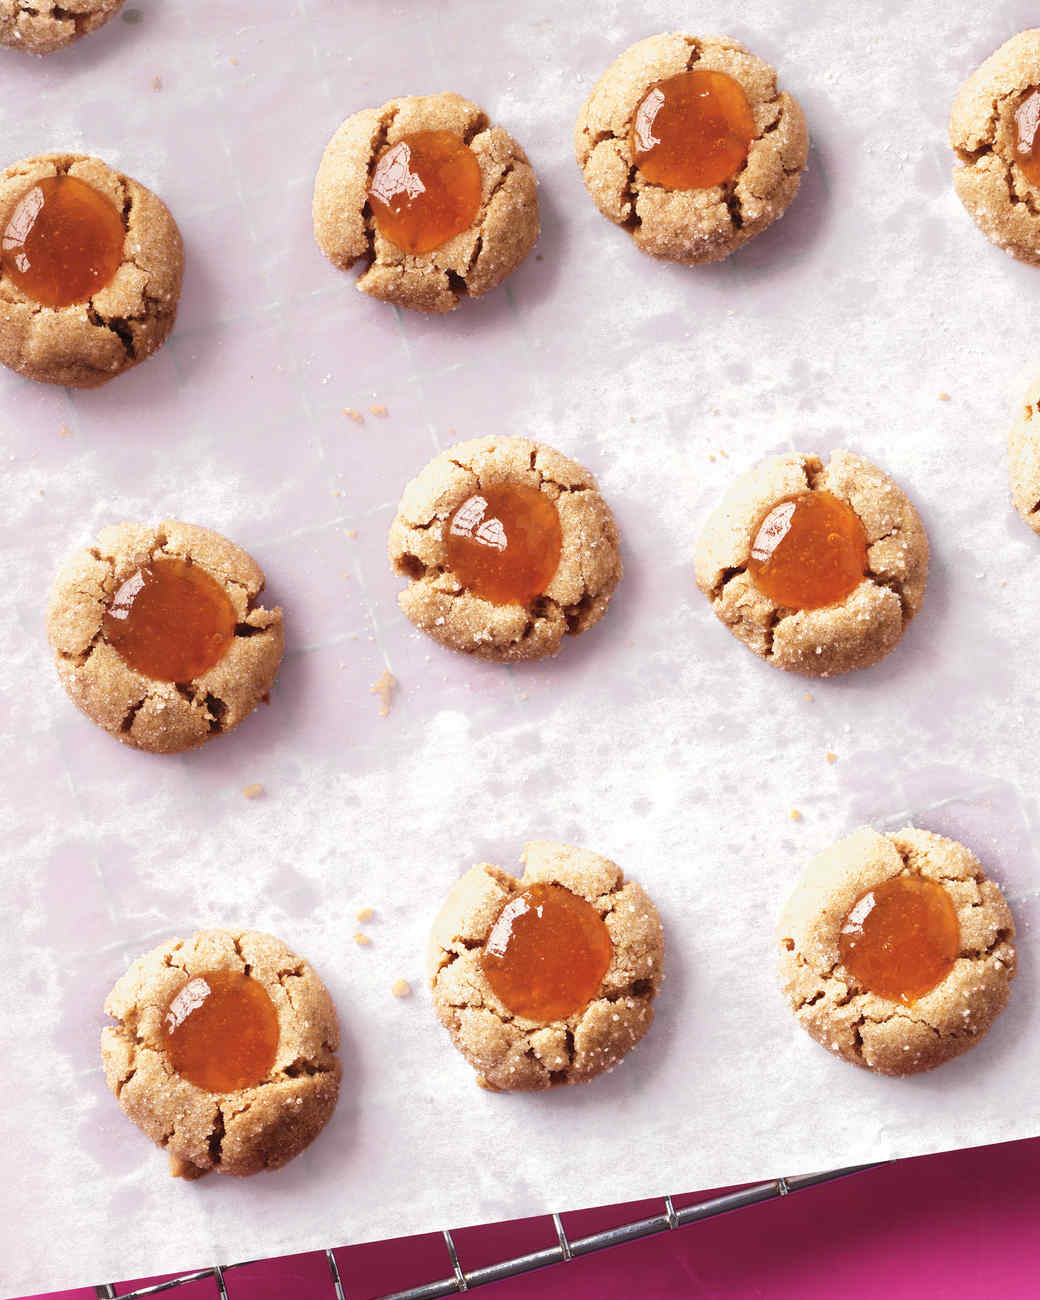 Almond and Apricot Thumbprint Cookies